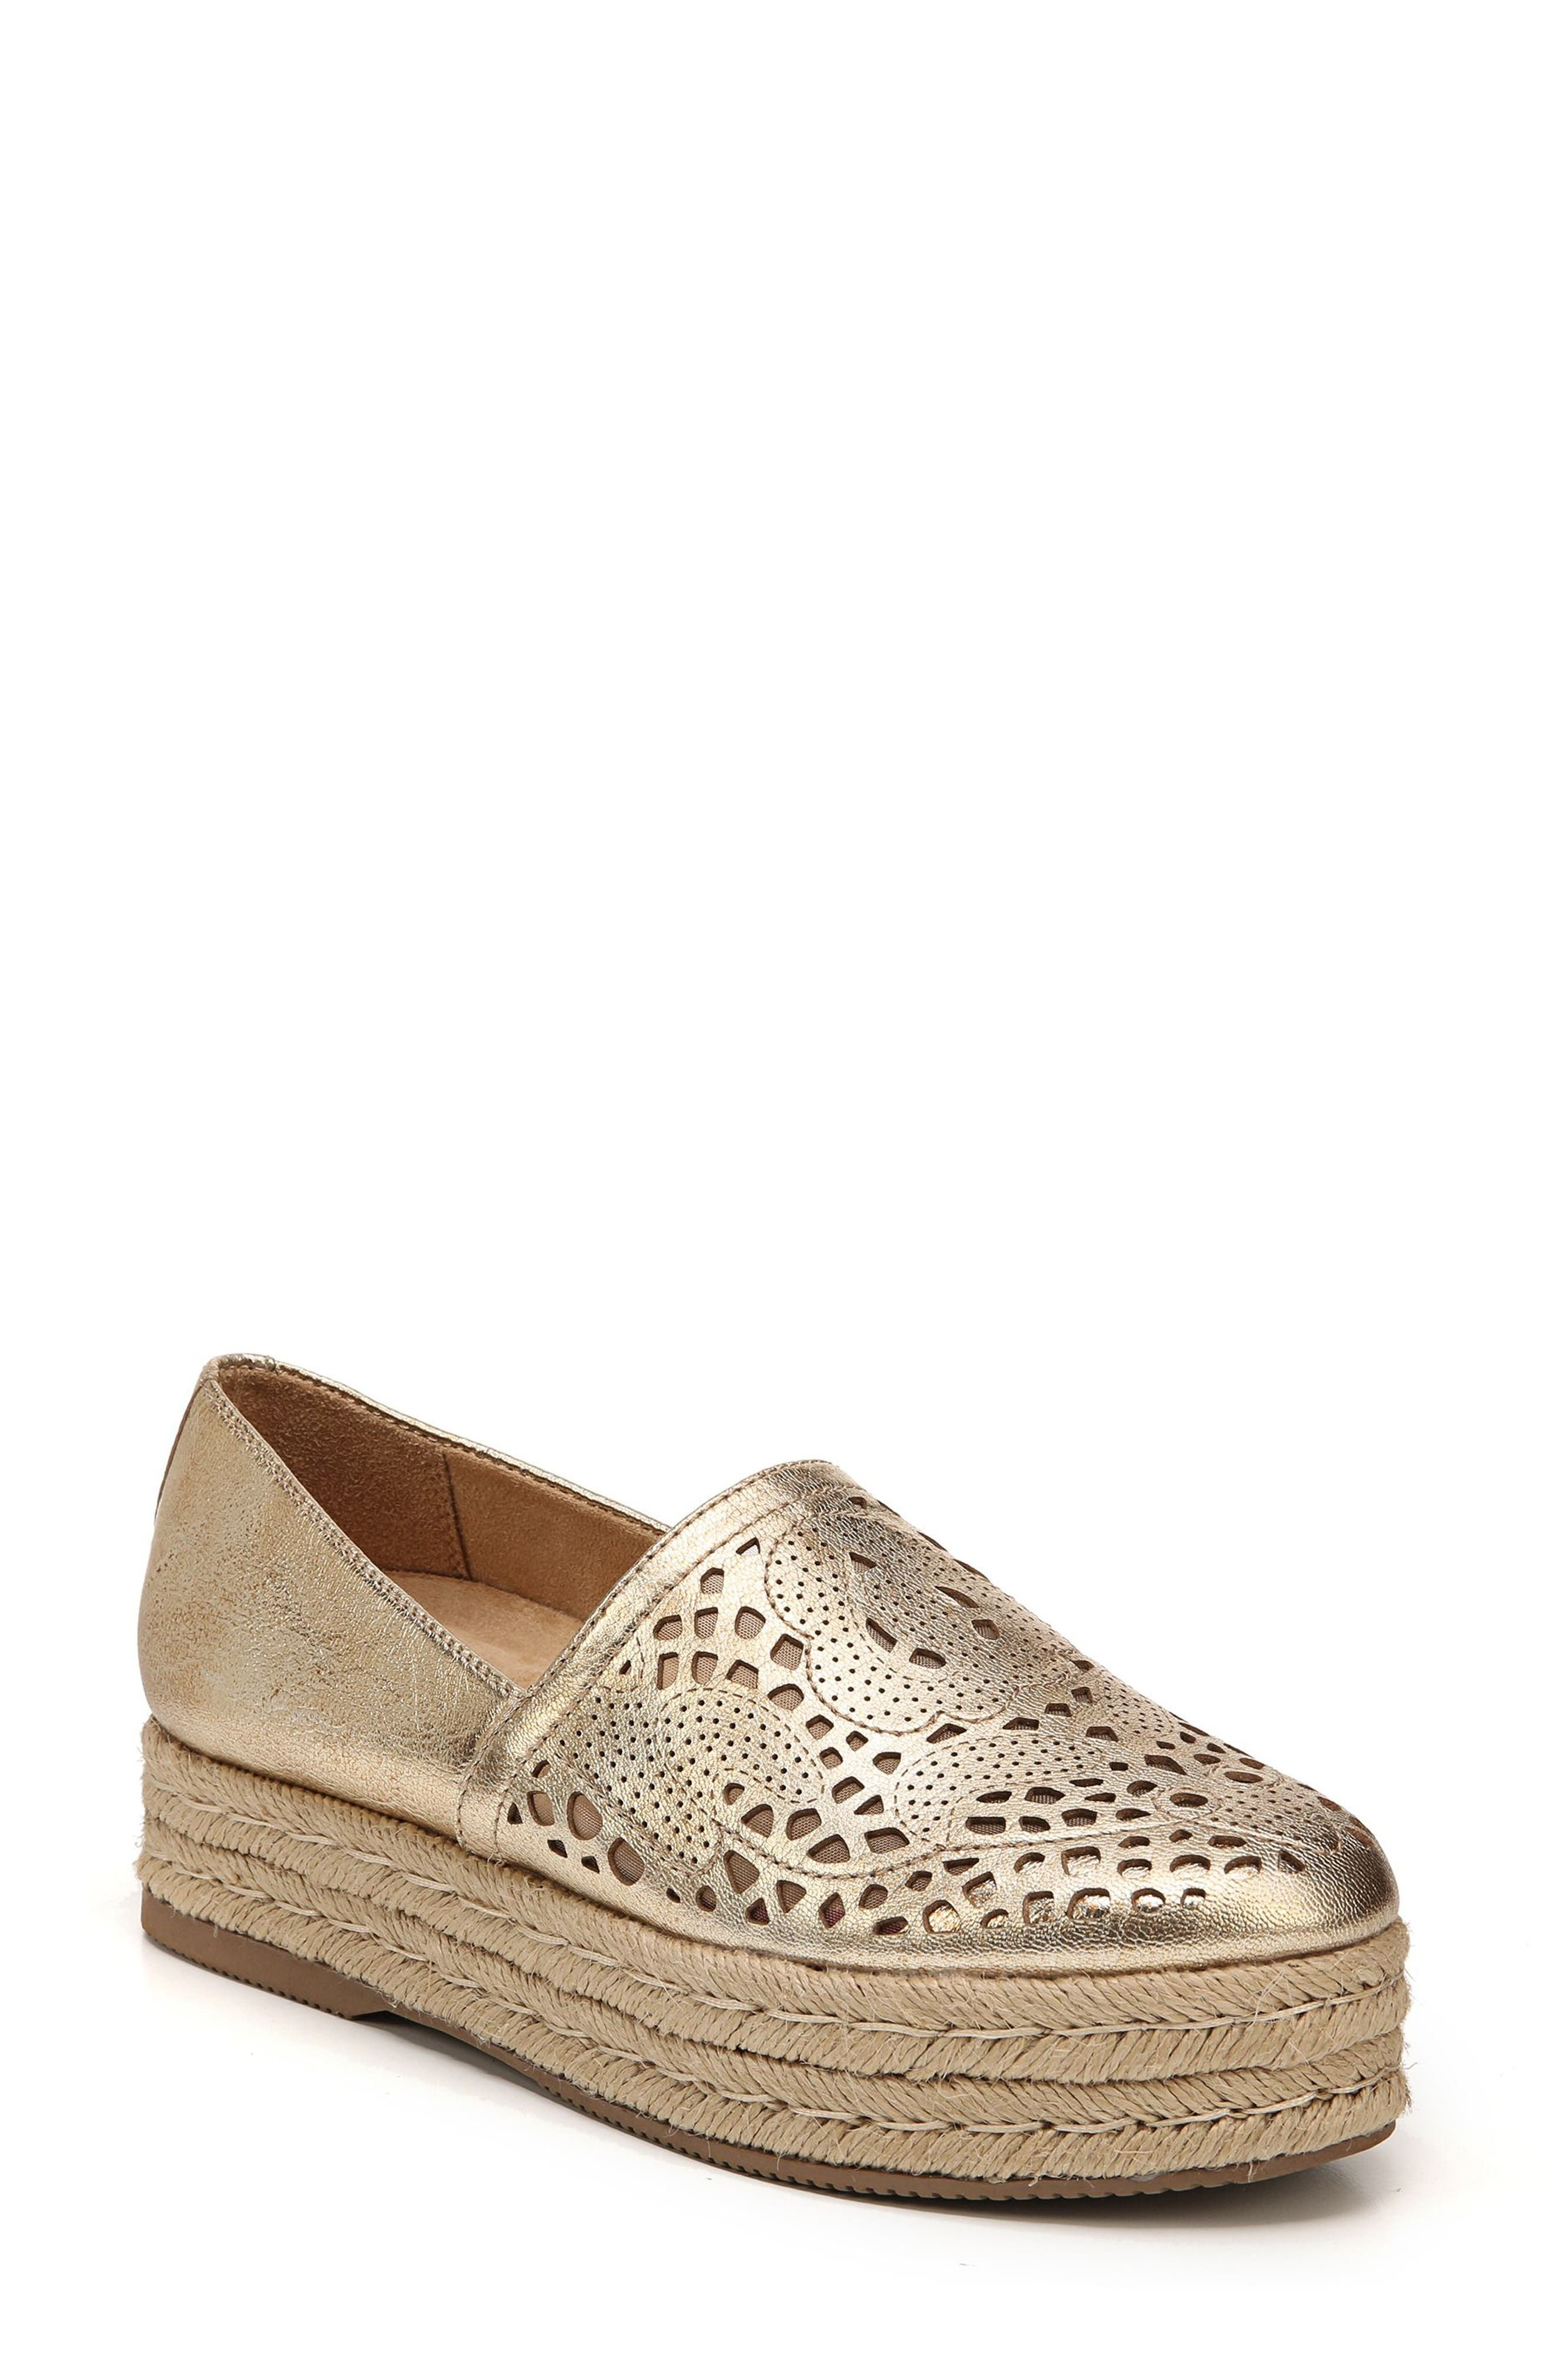 Thea Perforated Platform Espadrille,                         Main,                         color, Platino Leather